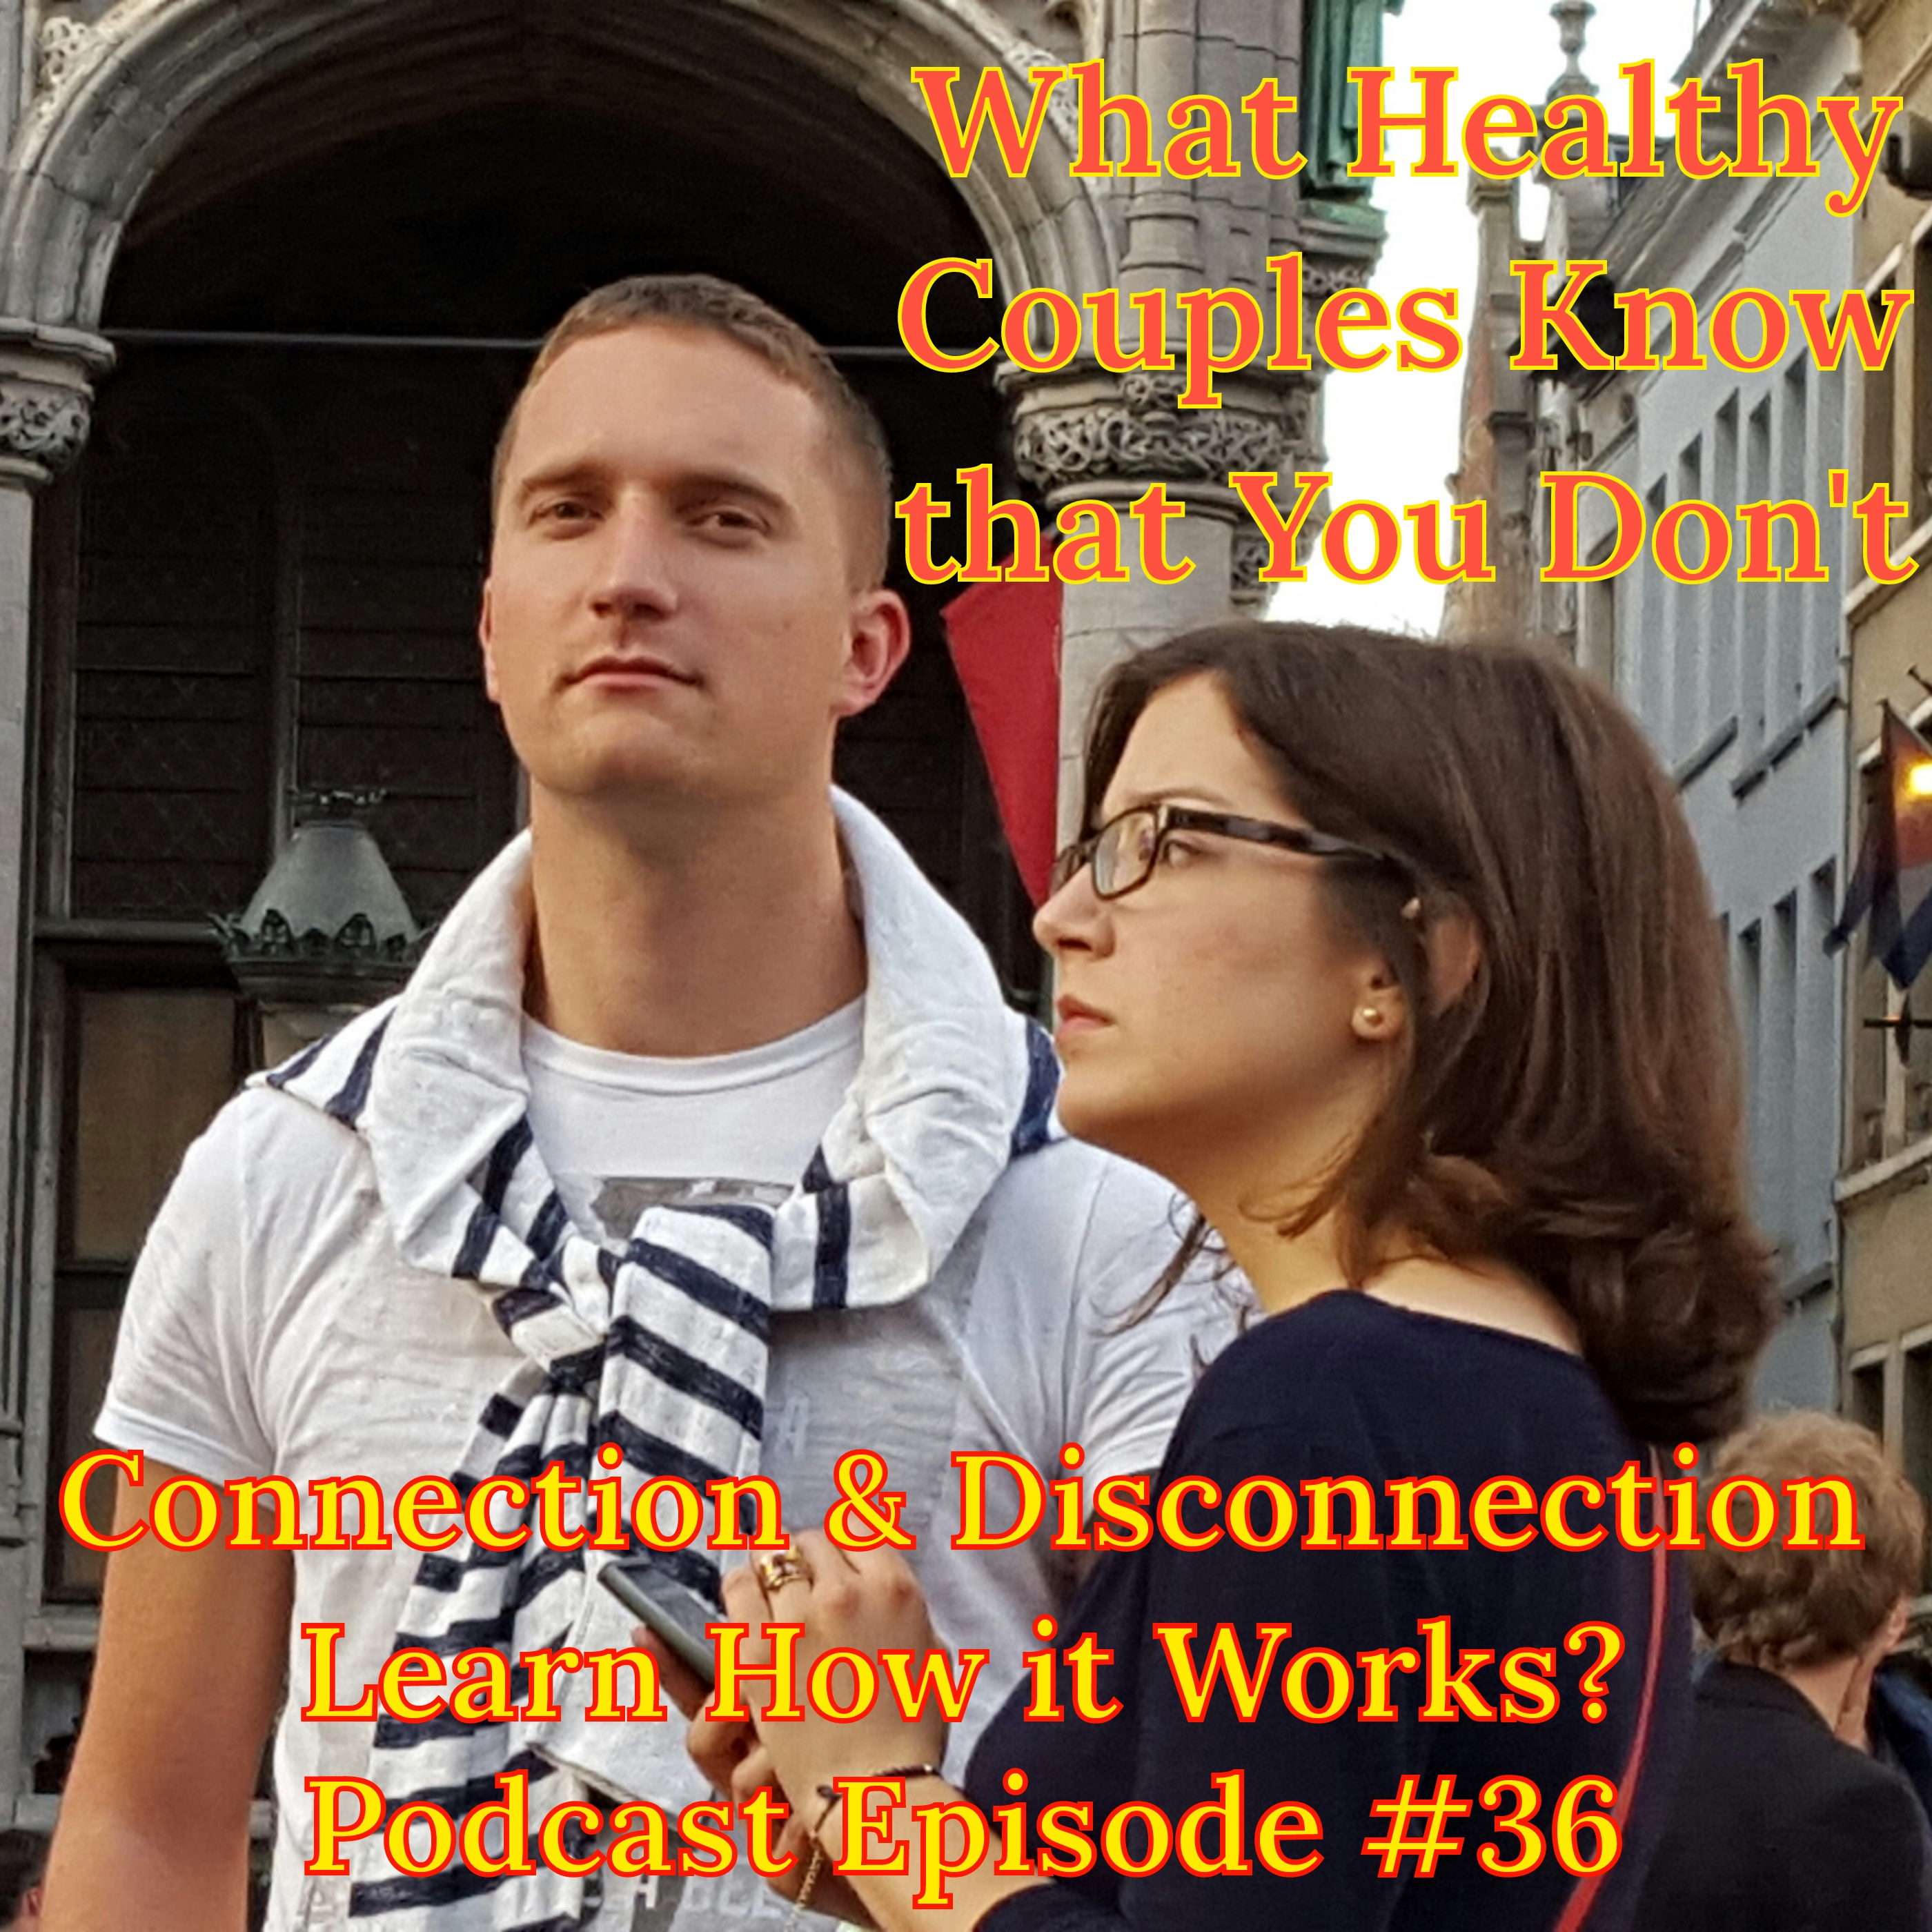 What Healthy Couples Know That You Don't - Connection & Disconnection, Learn How it Works